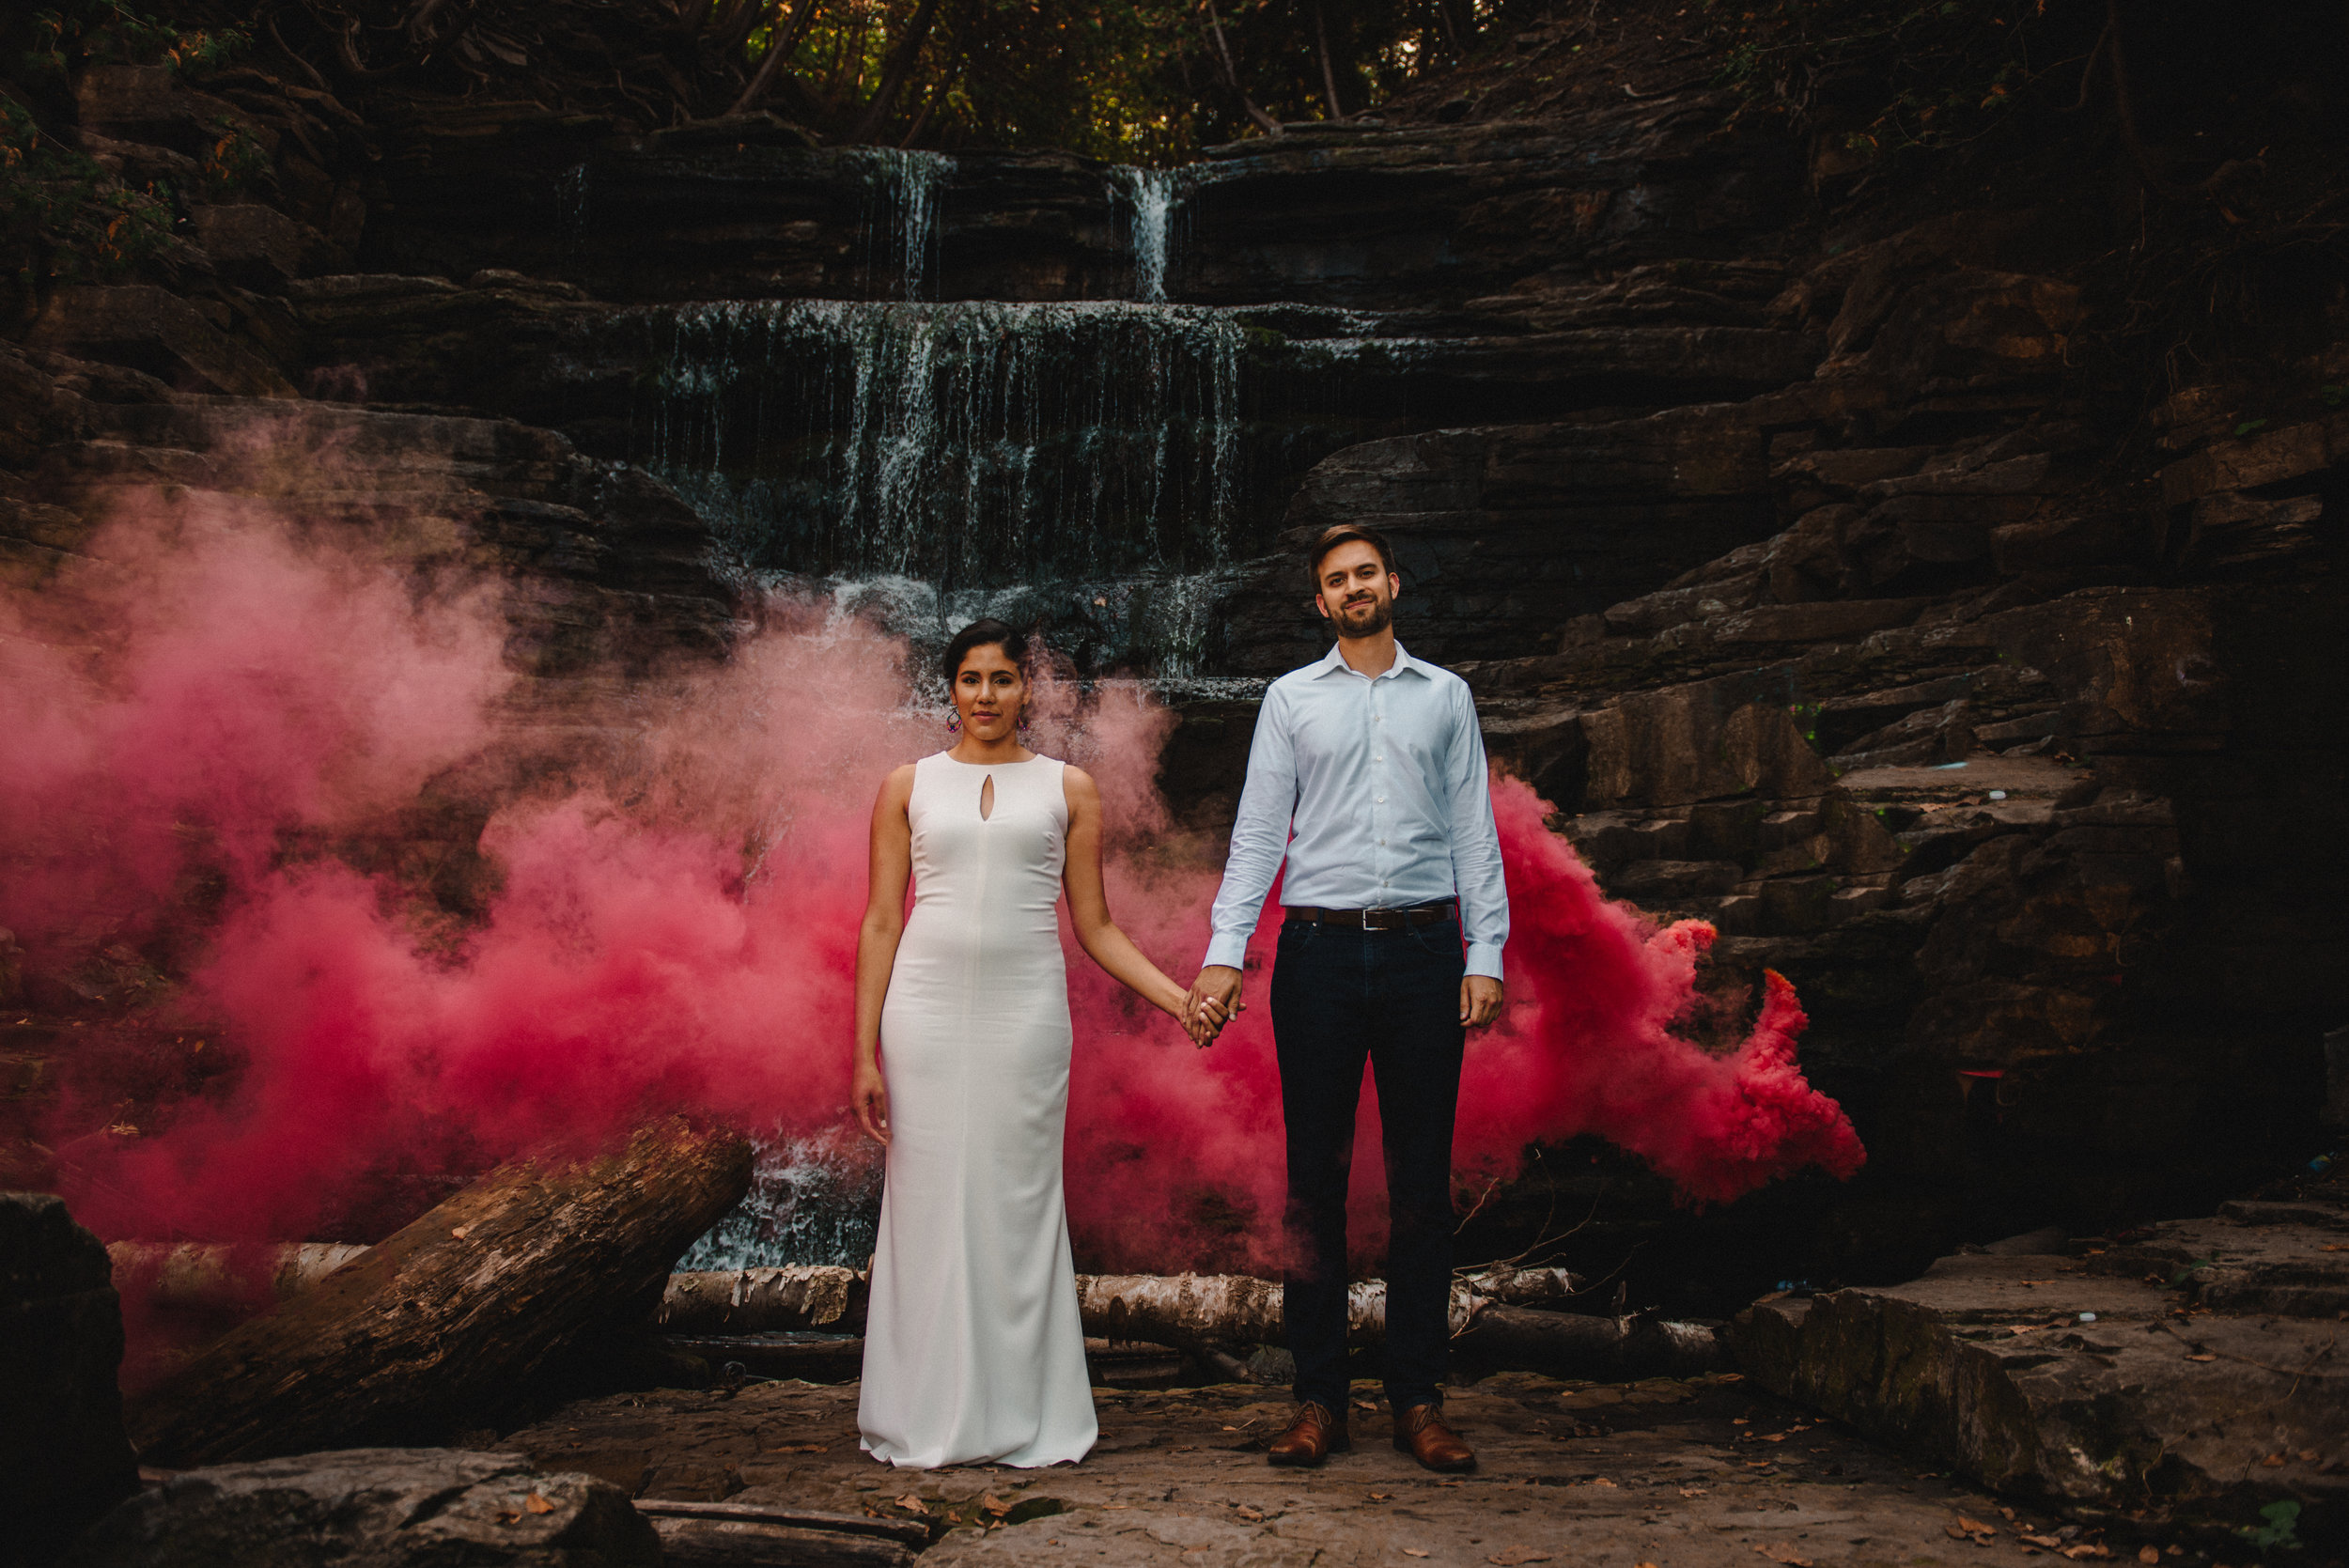 Mocha Tree Studios Ottawa Wedding and Engagement Photographer and Videographer Dark Moody Intimate Authentic Modern Romantic Cinematic Best Candid Princess Louise Falls 5